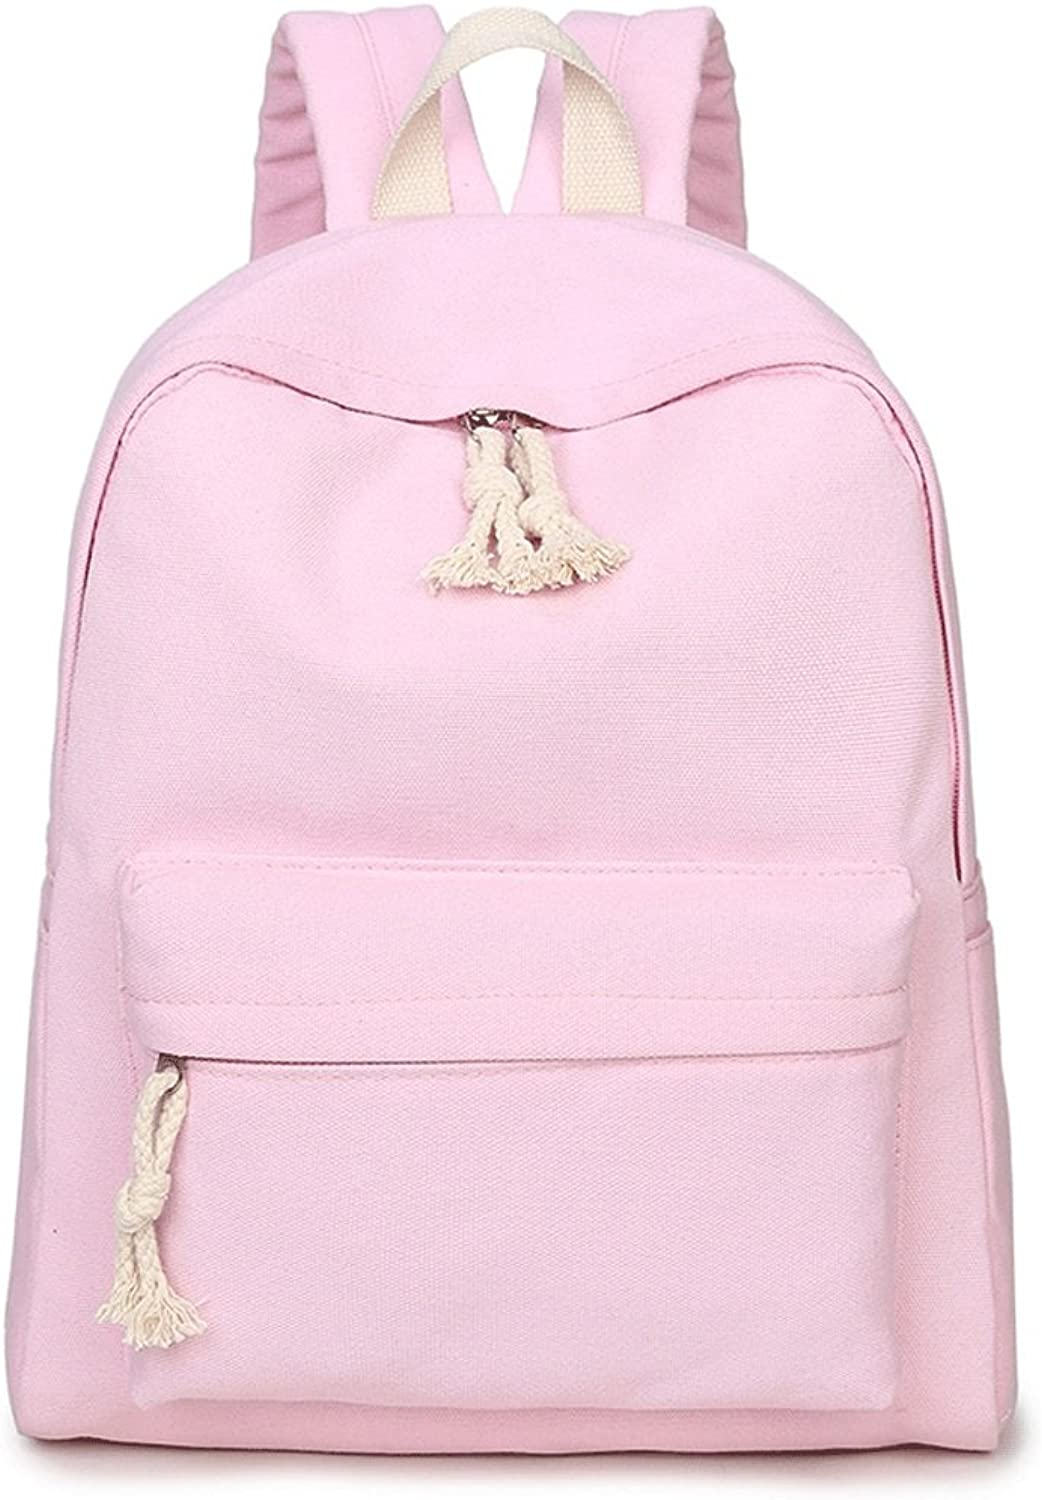 Backpack Fashion Student Bag Large Capacity Campus Simple Daypack Travel Bag